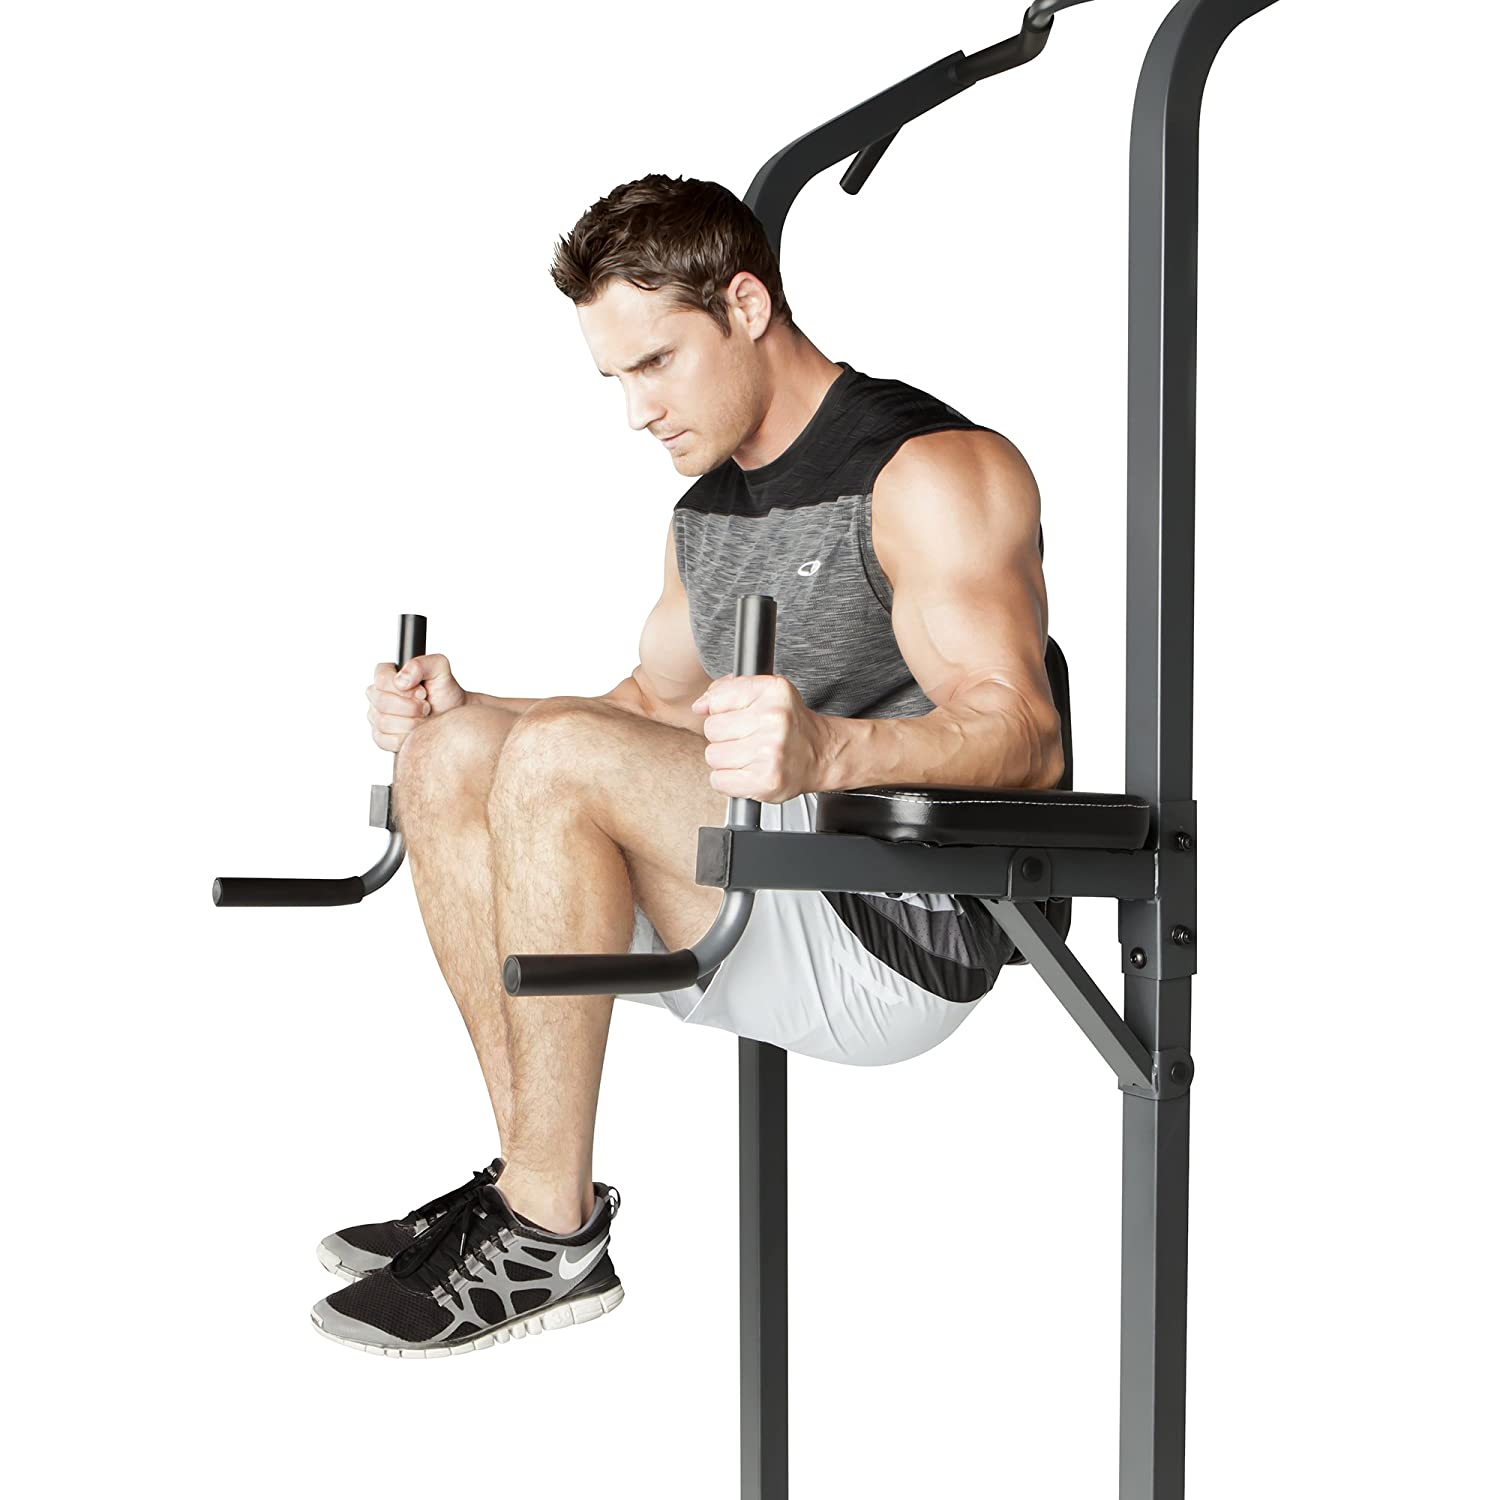 Marcy TS-3515 Power Tower (Best for Tall People)